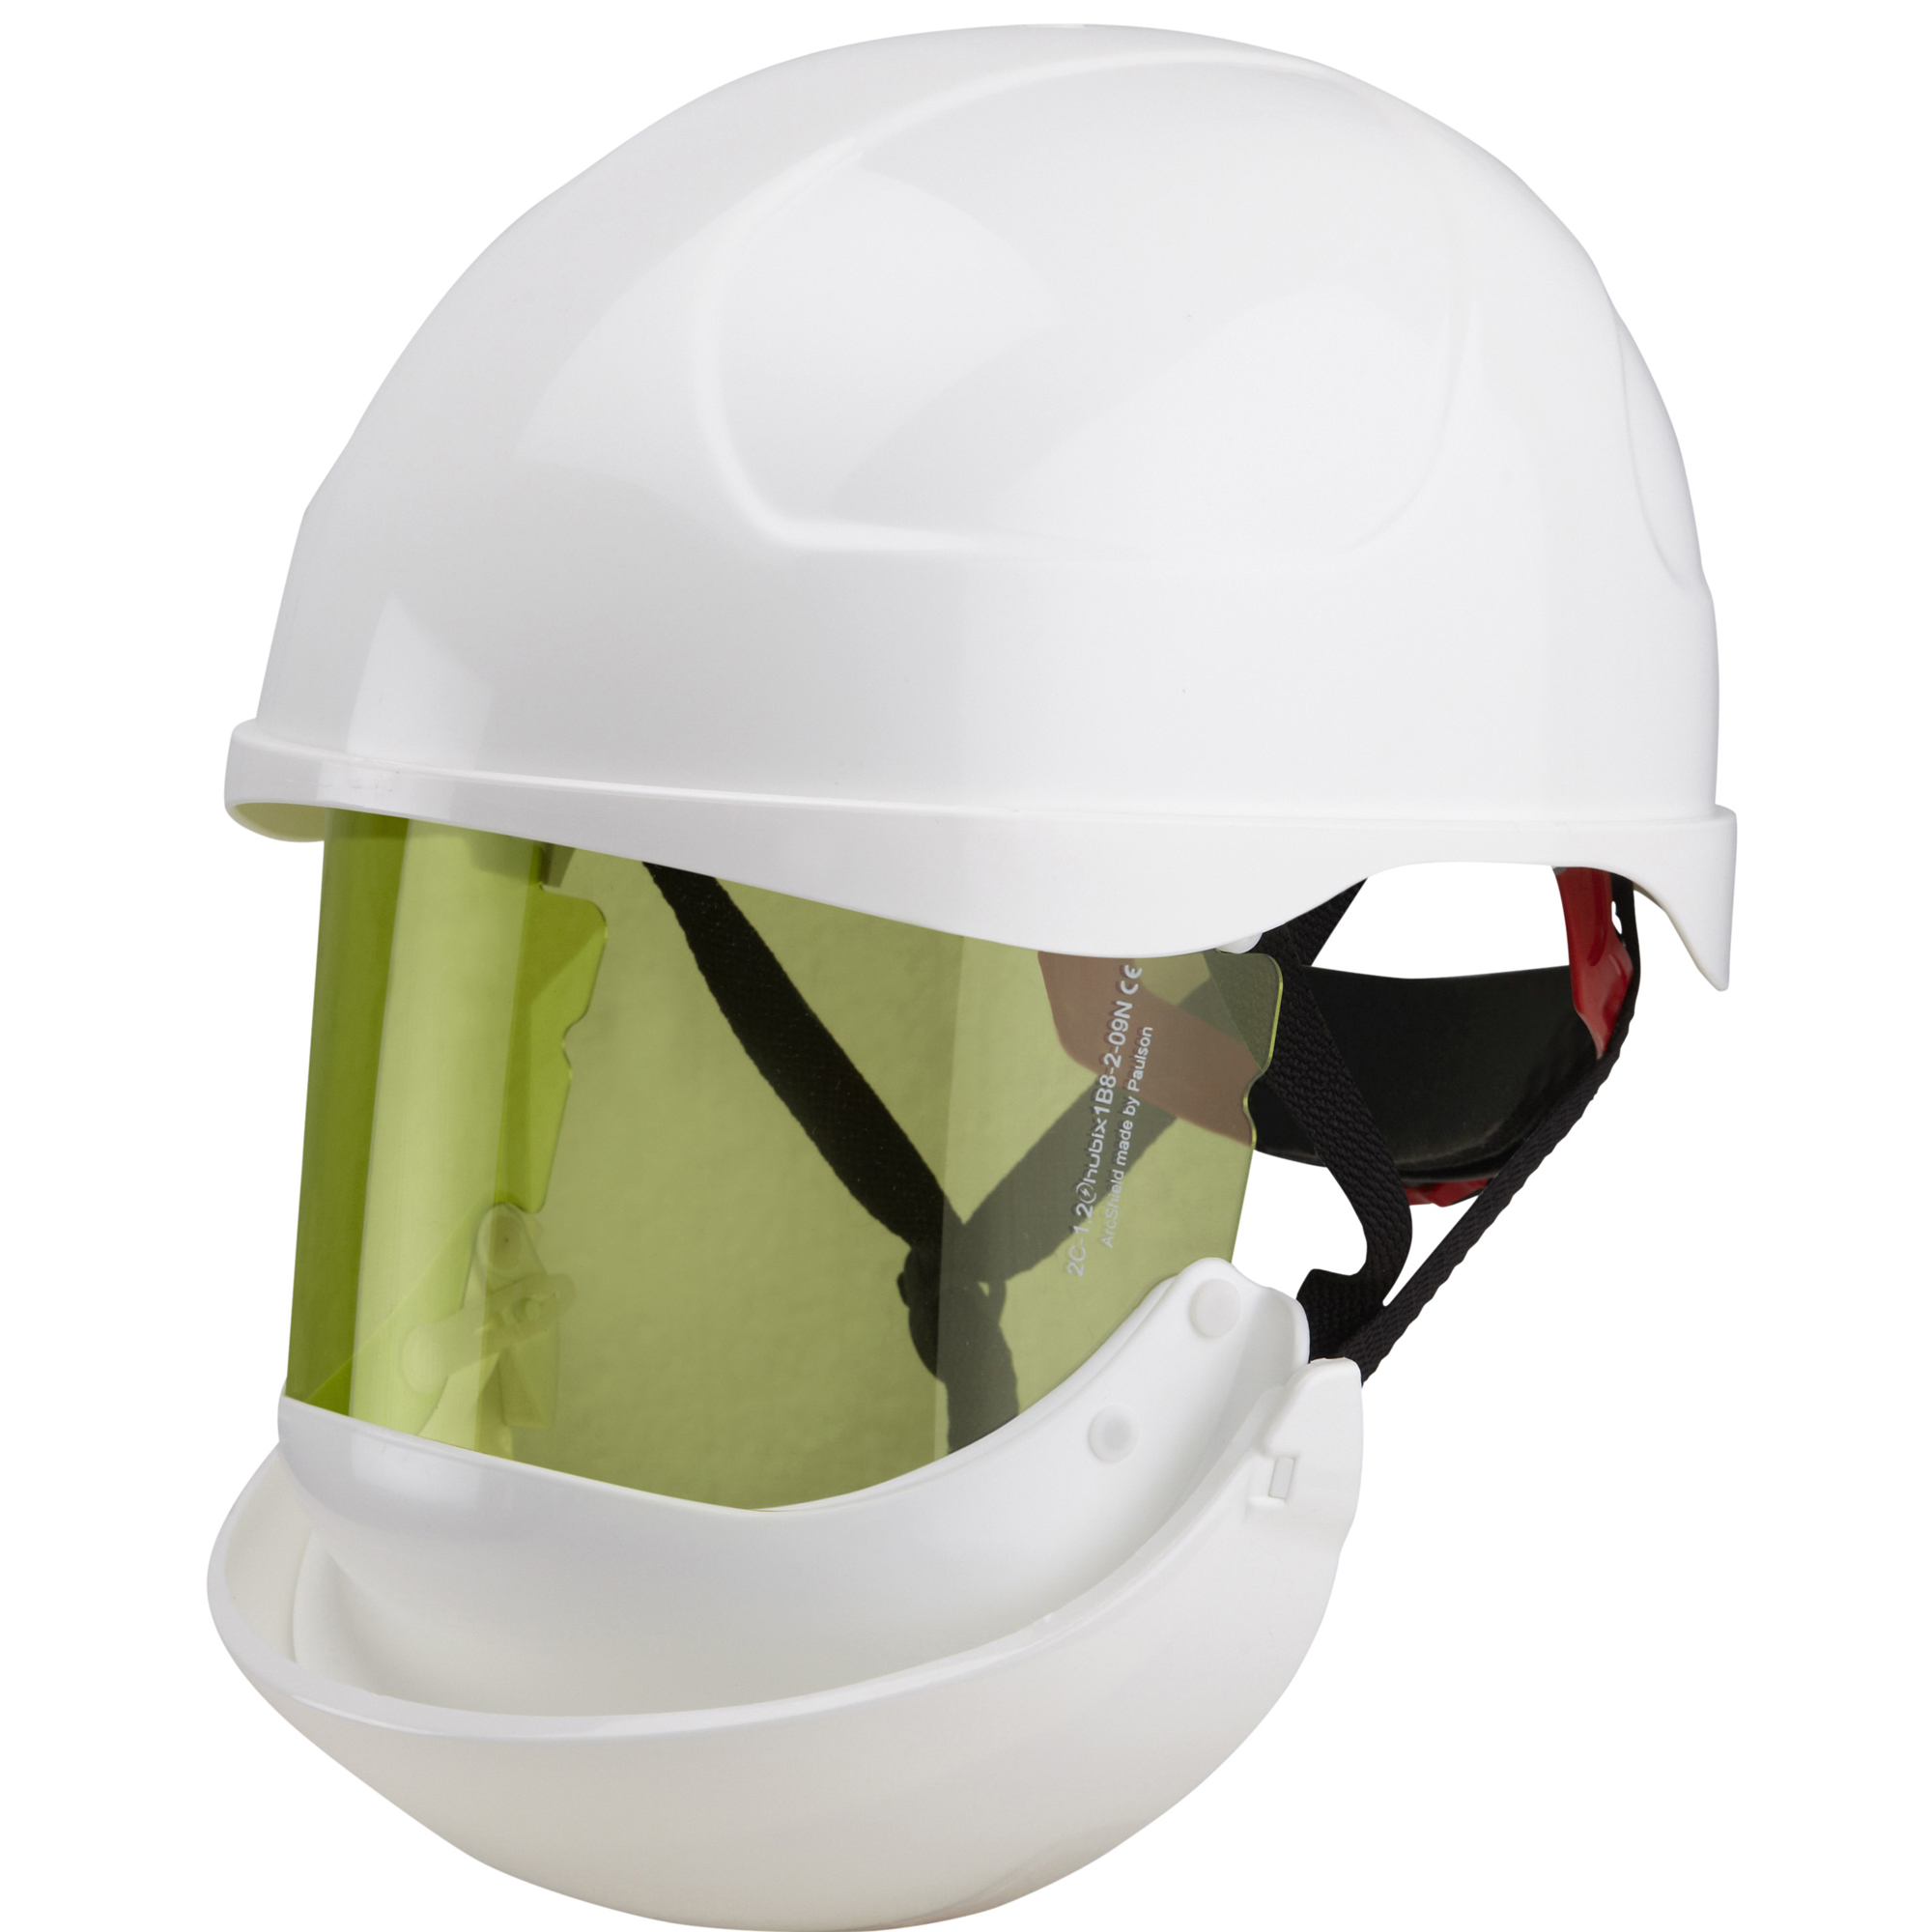 ELECTRICALLY INSULATED SAFETY HELMET b50768a23cf